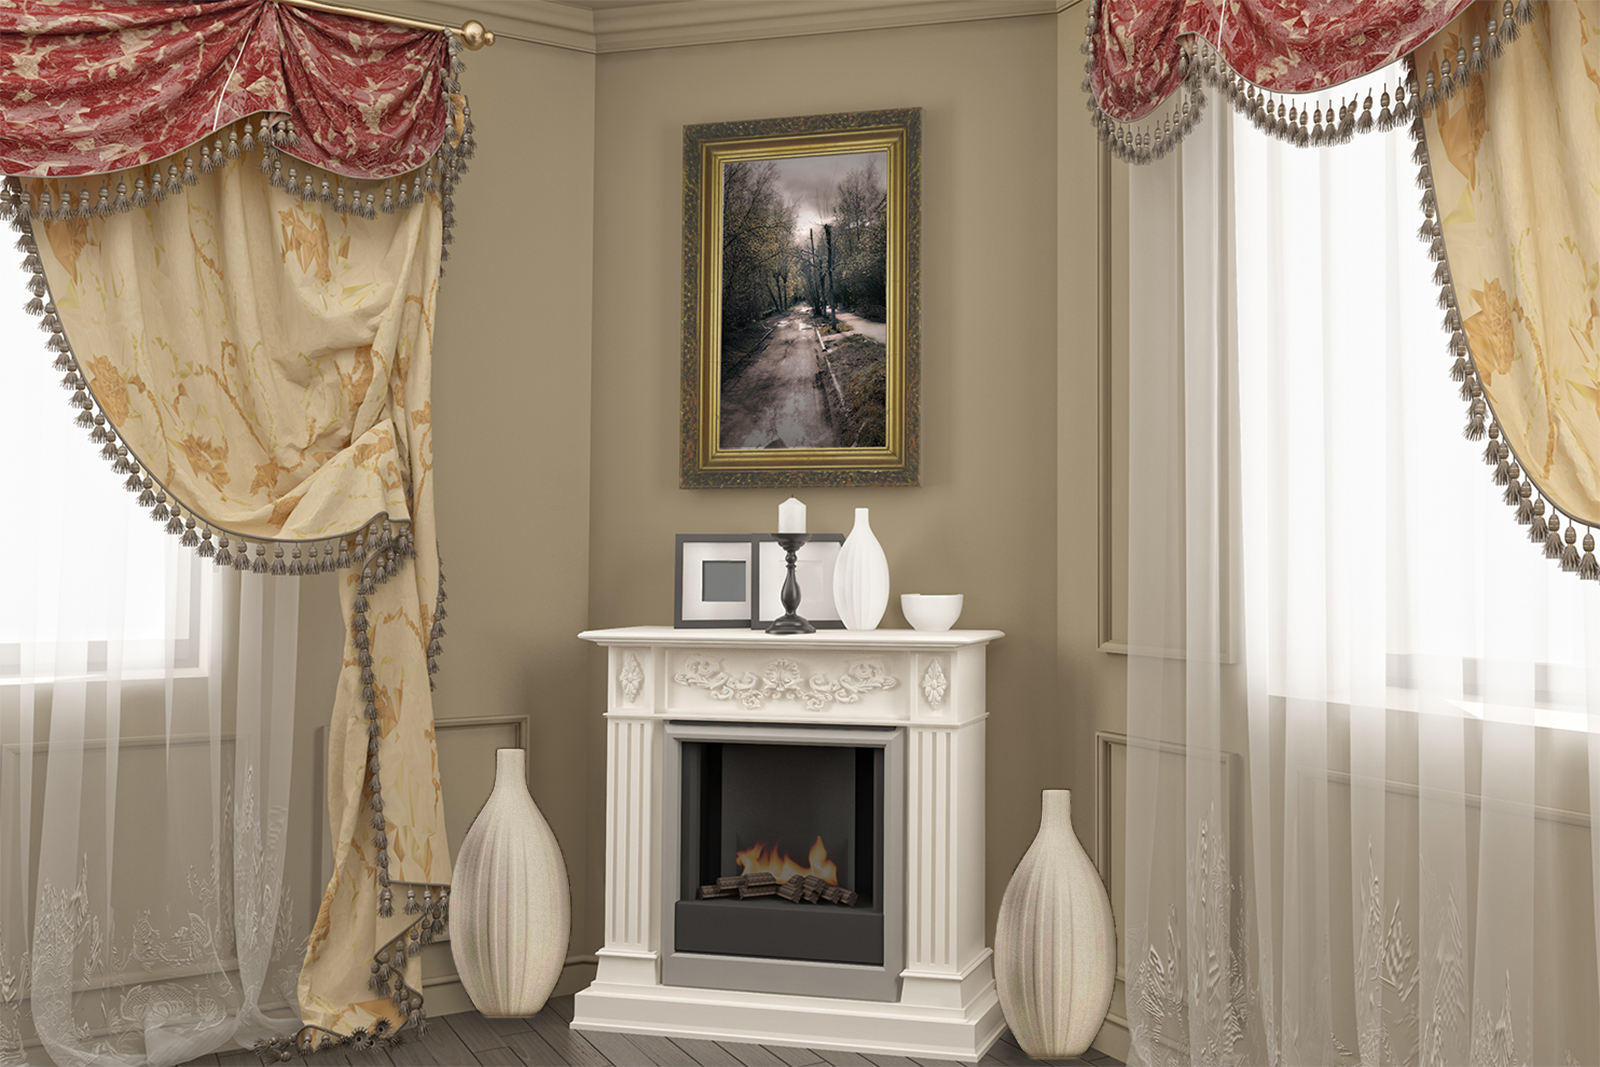 How To Decorate Fireplace How To Decorate A Corner Fireplace Lovetoknow